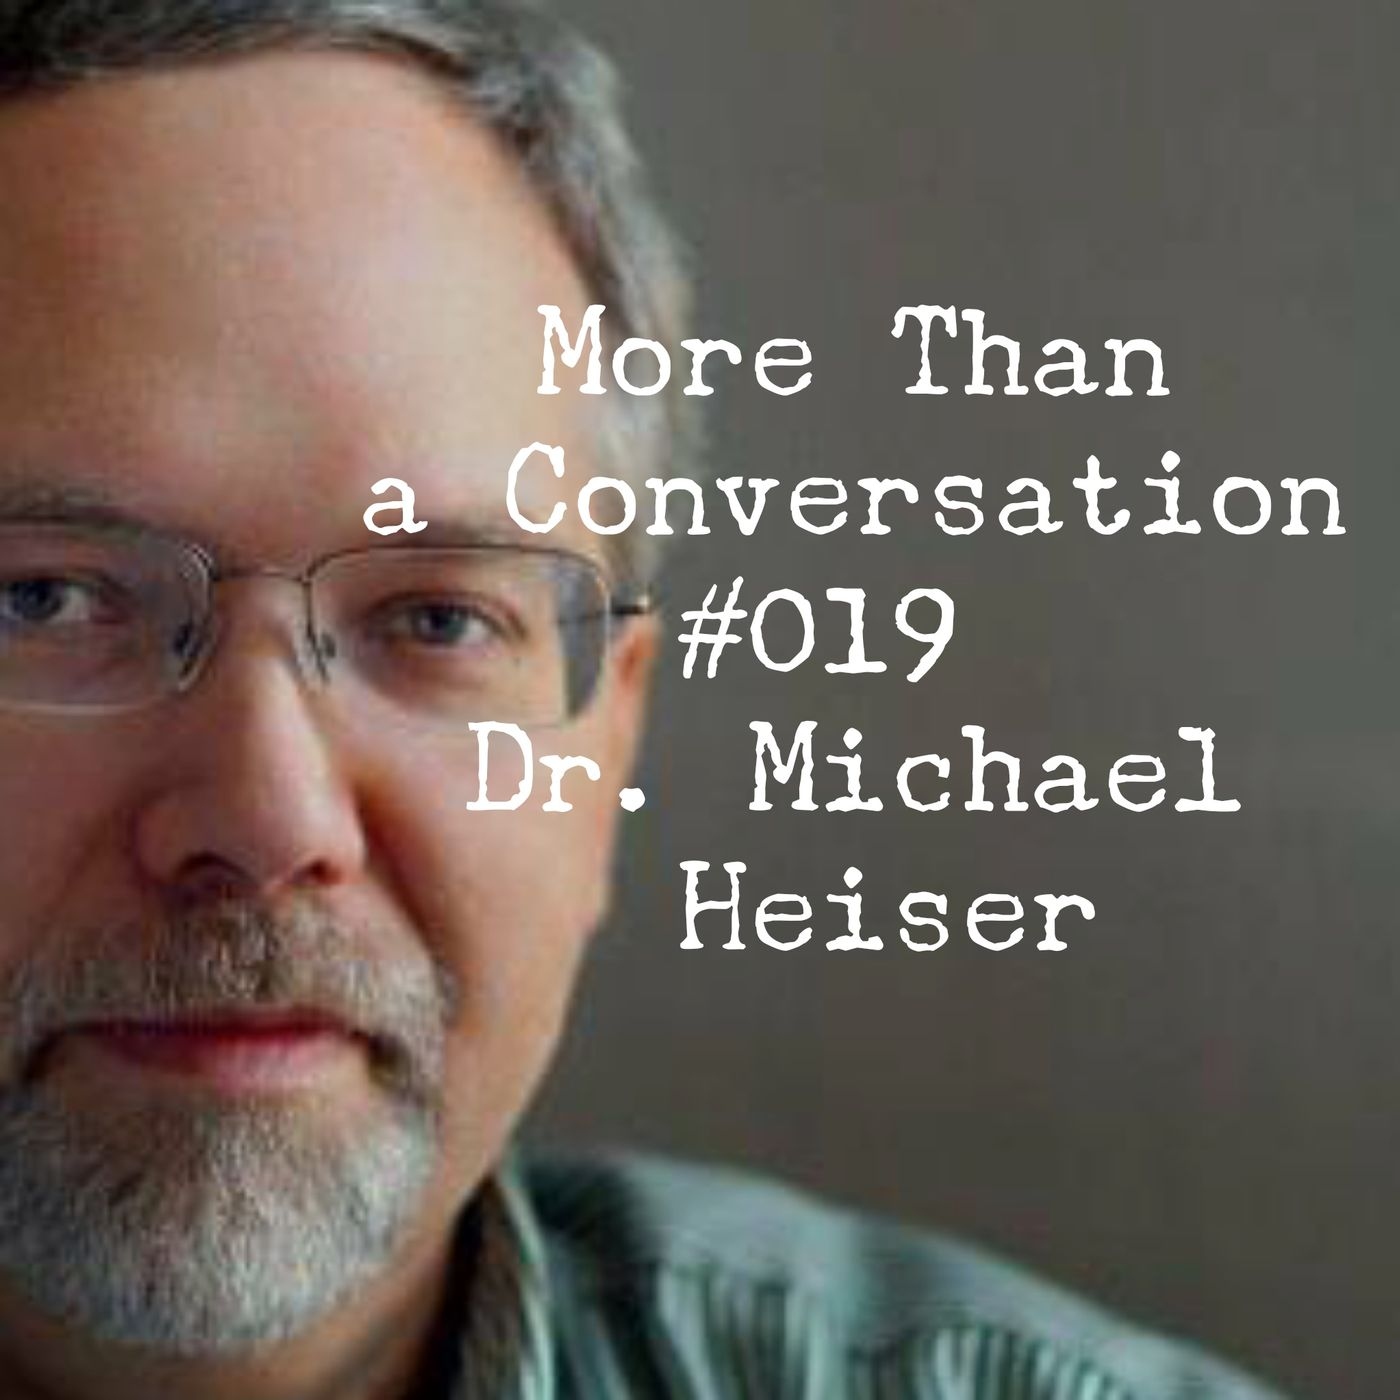 #019 Dr. Michael Heiser, author of Unseen Realm, scholar, speaker